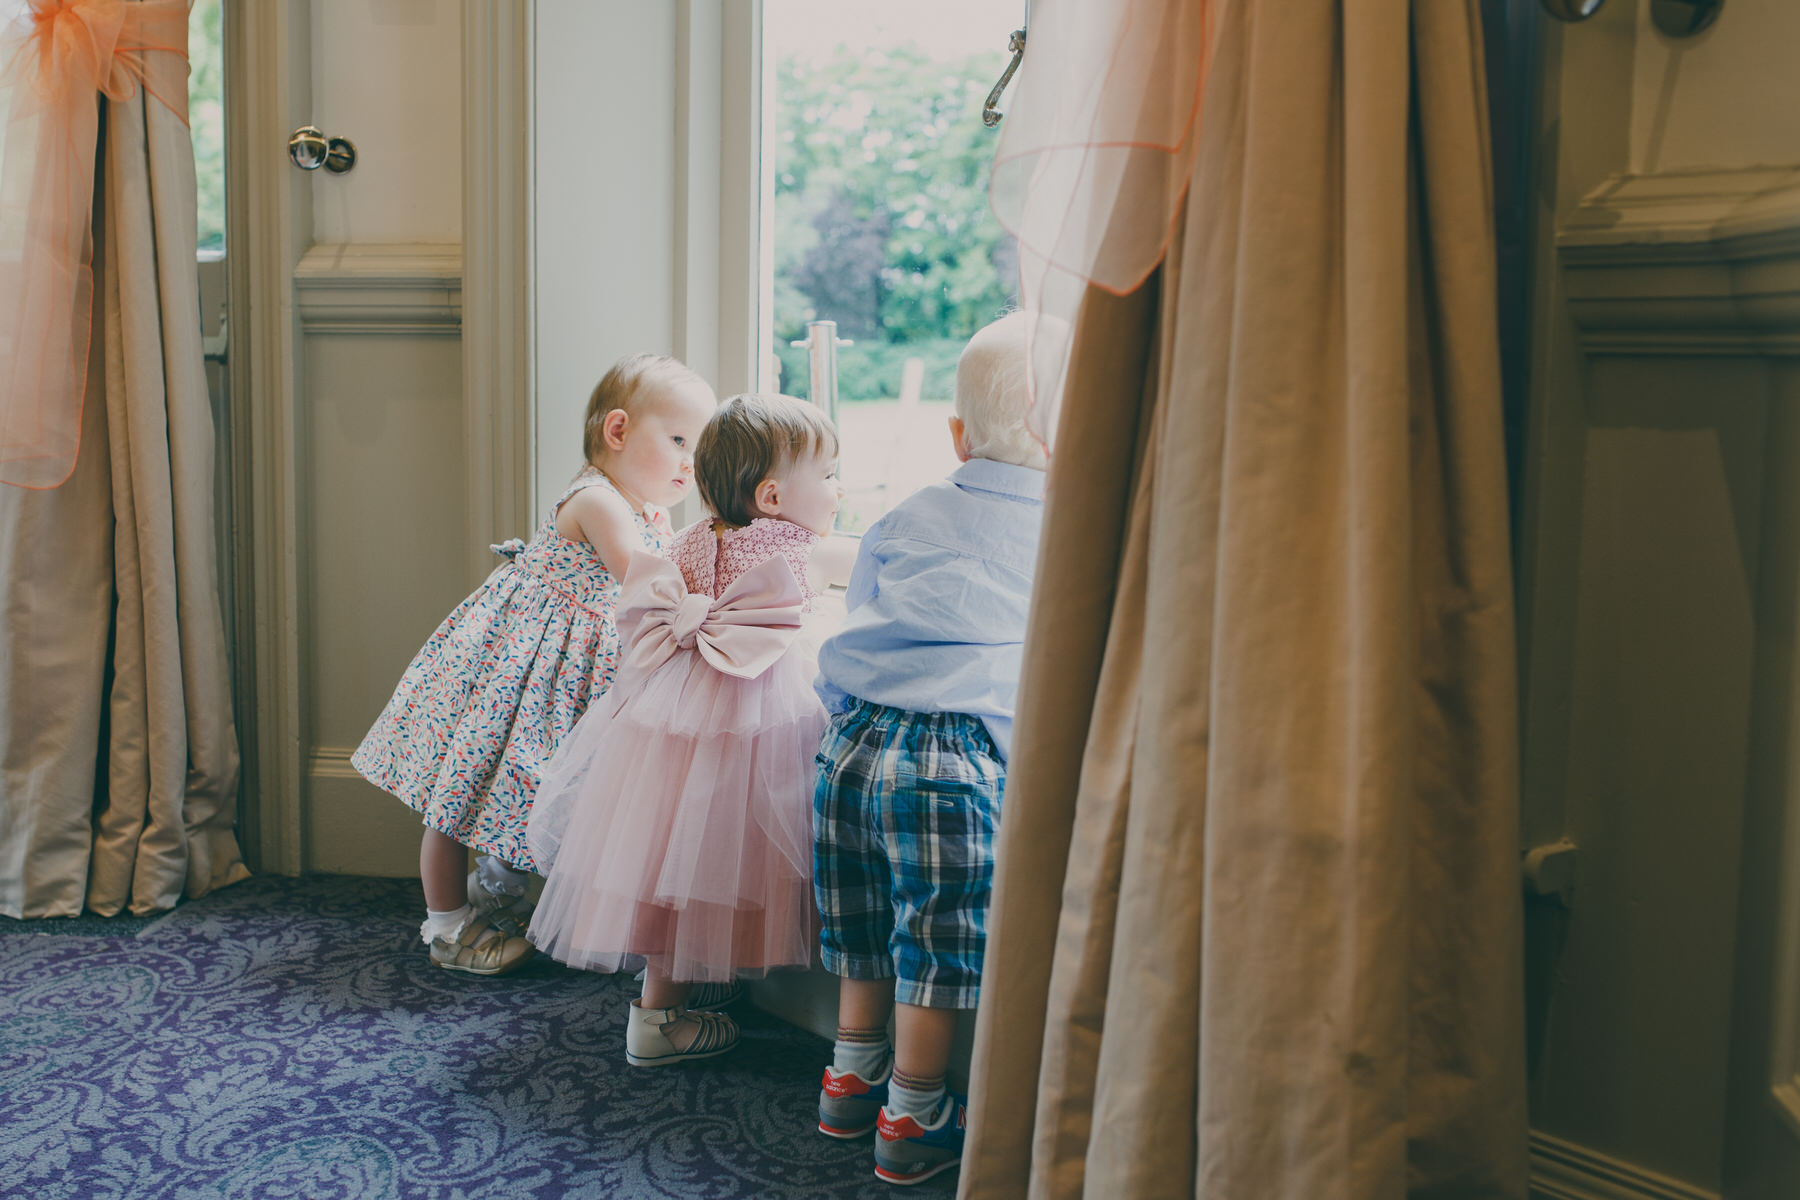 217 child wedding guests look out the window.jpg